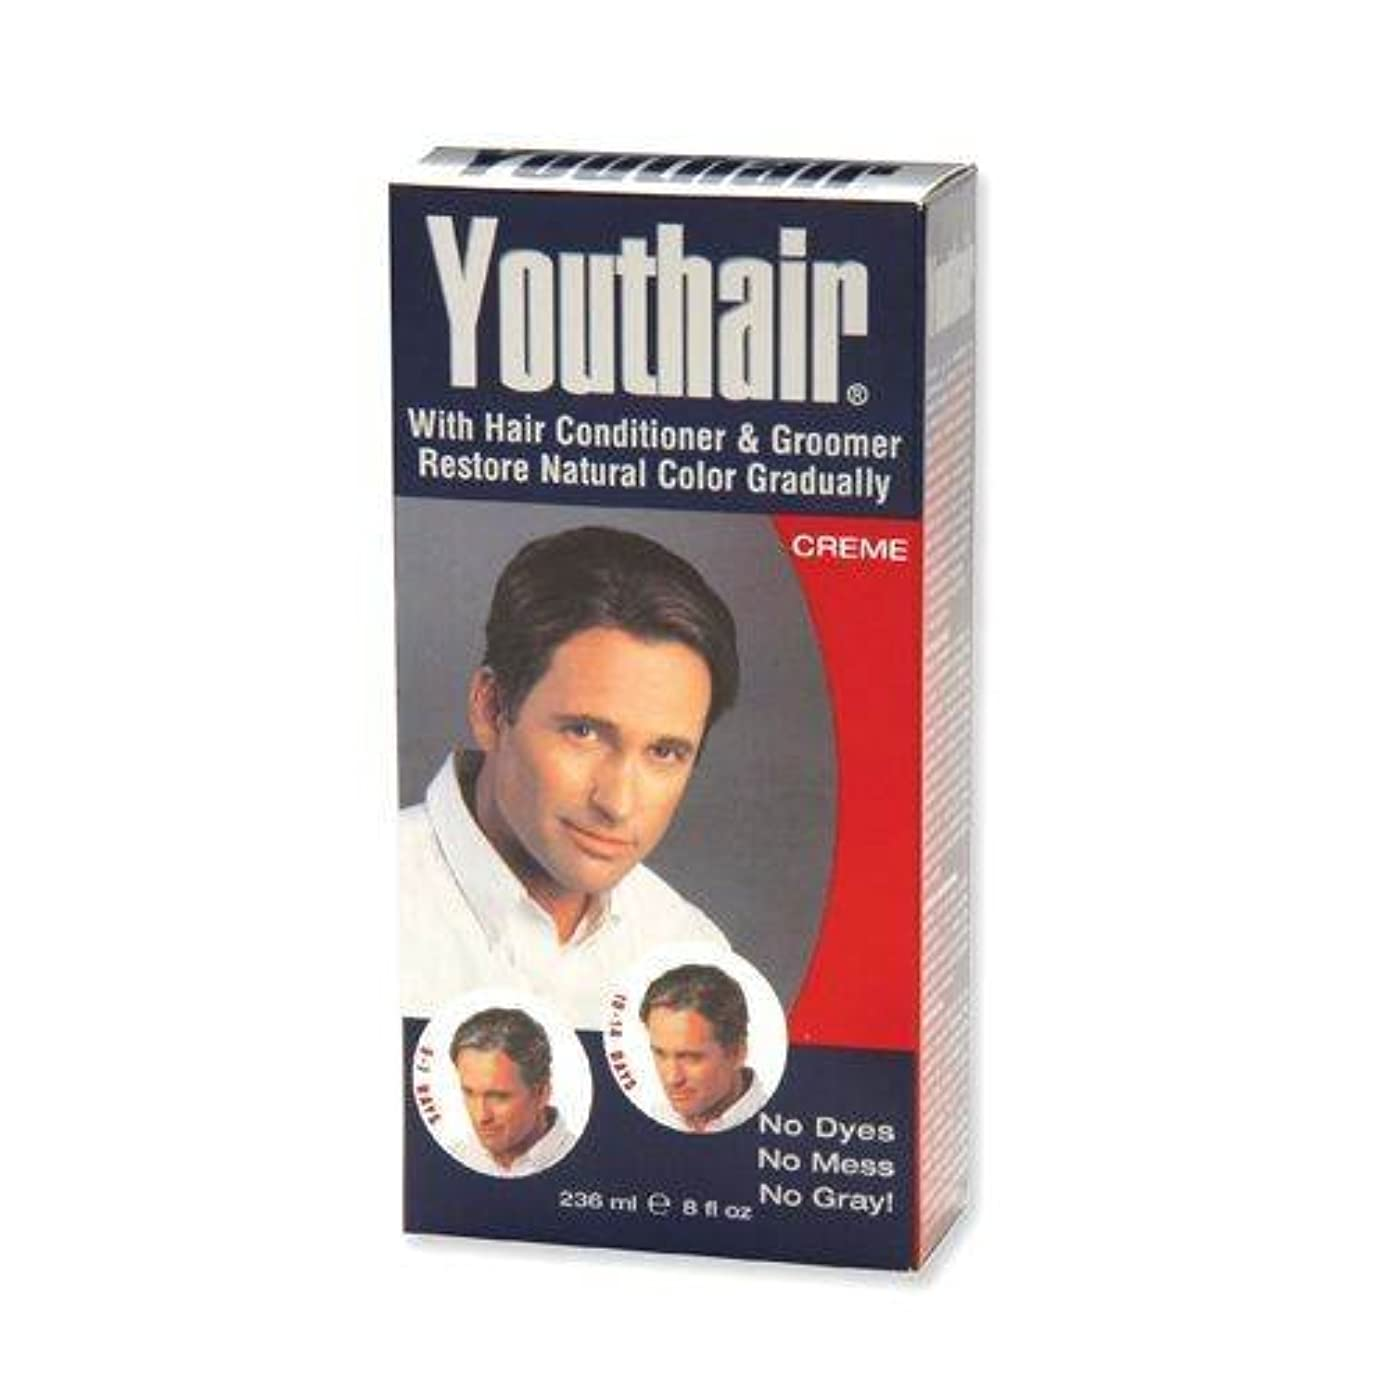 取り除く電子レンジ歩道YOUTHAIR Creme for Men with Hair Conditioner & Groomer Restore Natural Color Gradually 8oz/236ml by Youthair